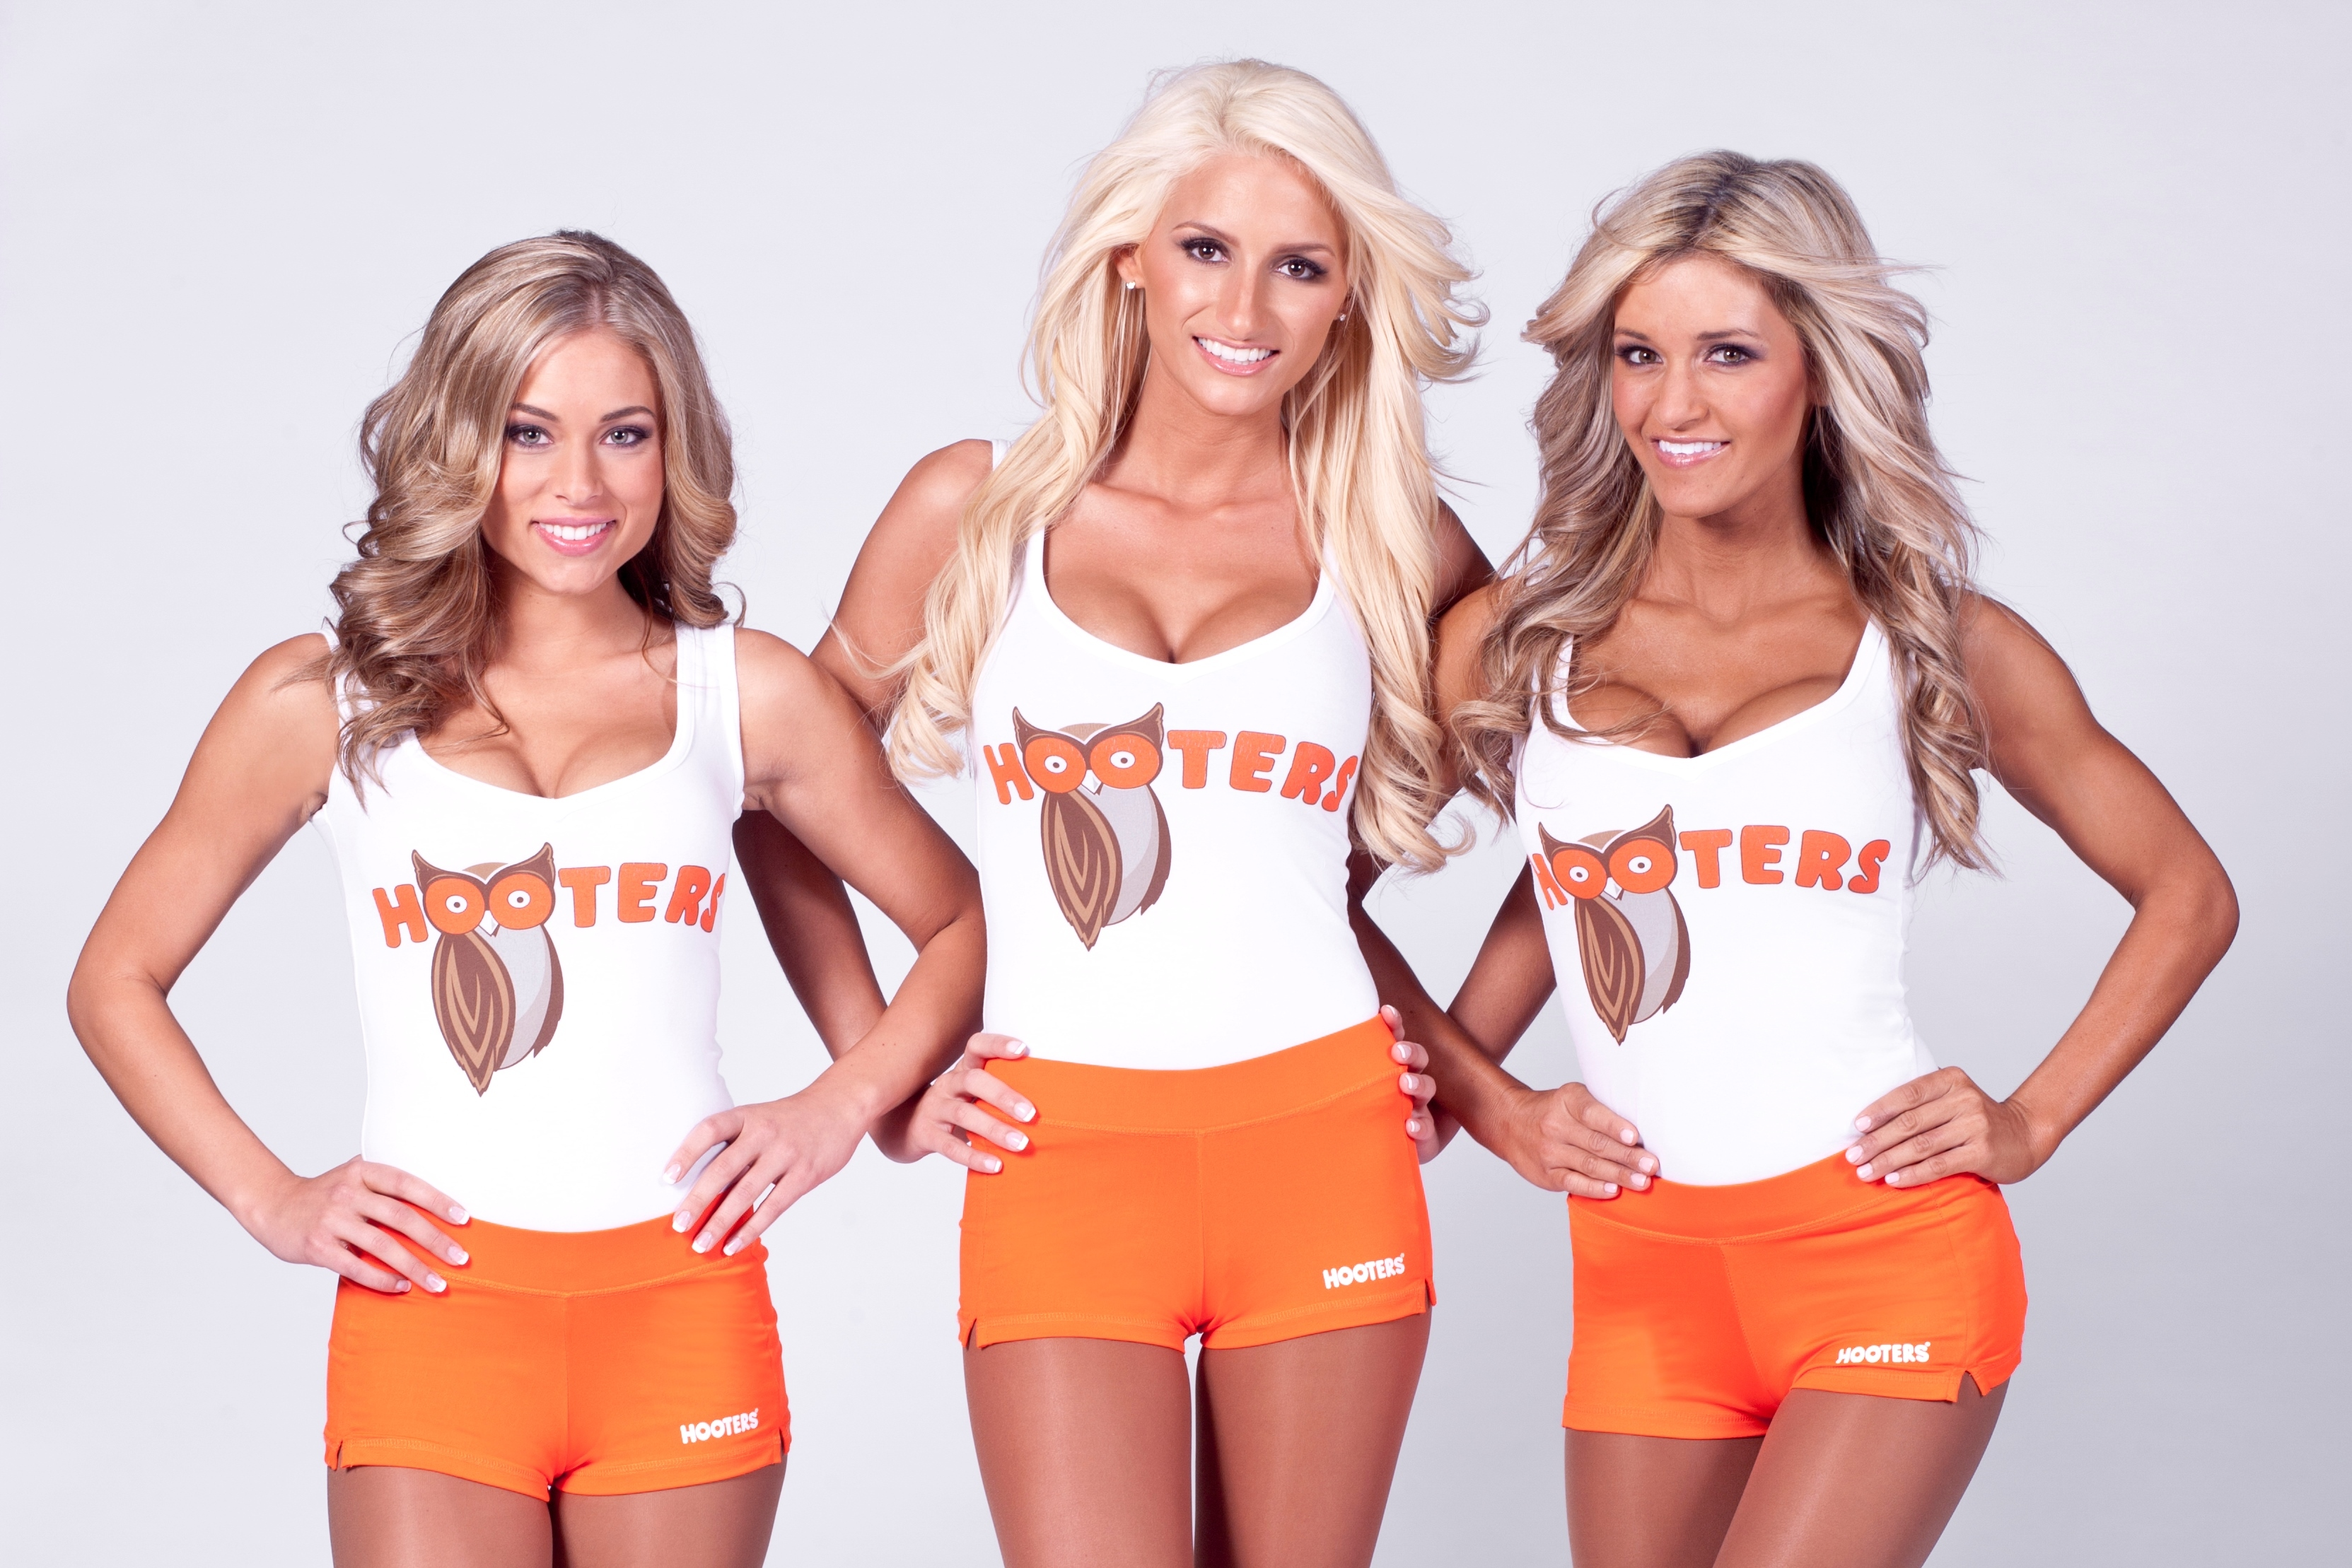 hooters debuts new logo after 30 years hooters newsroom